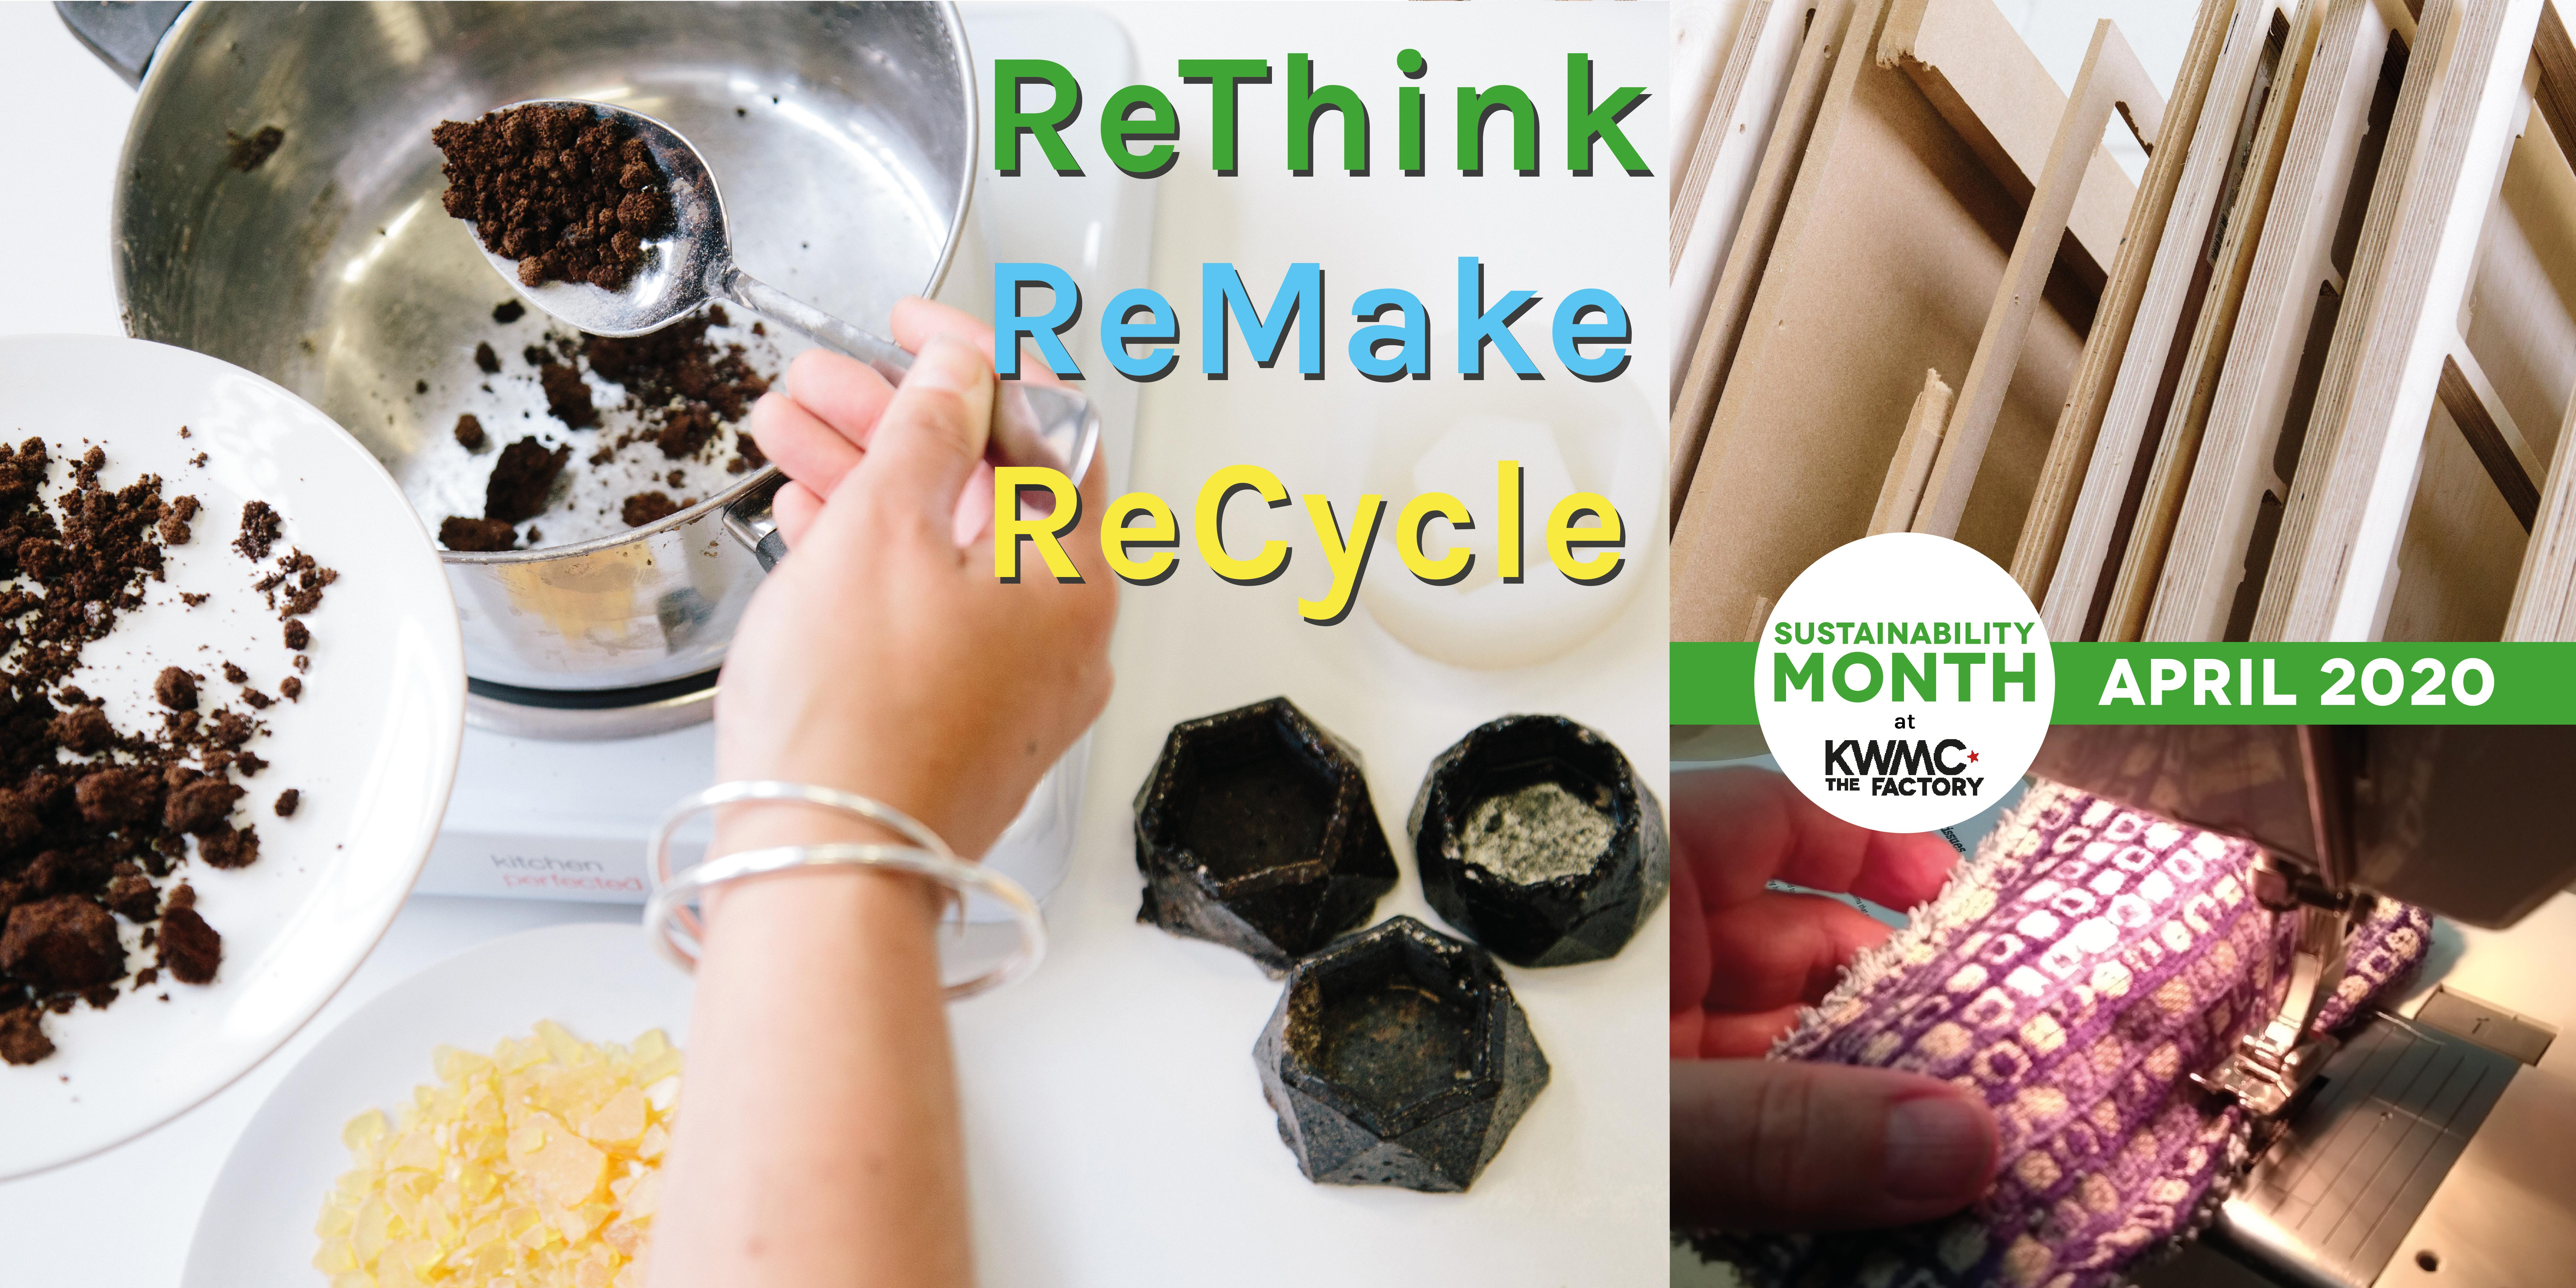 ReThink, ReMake, ReCycle